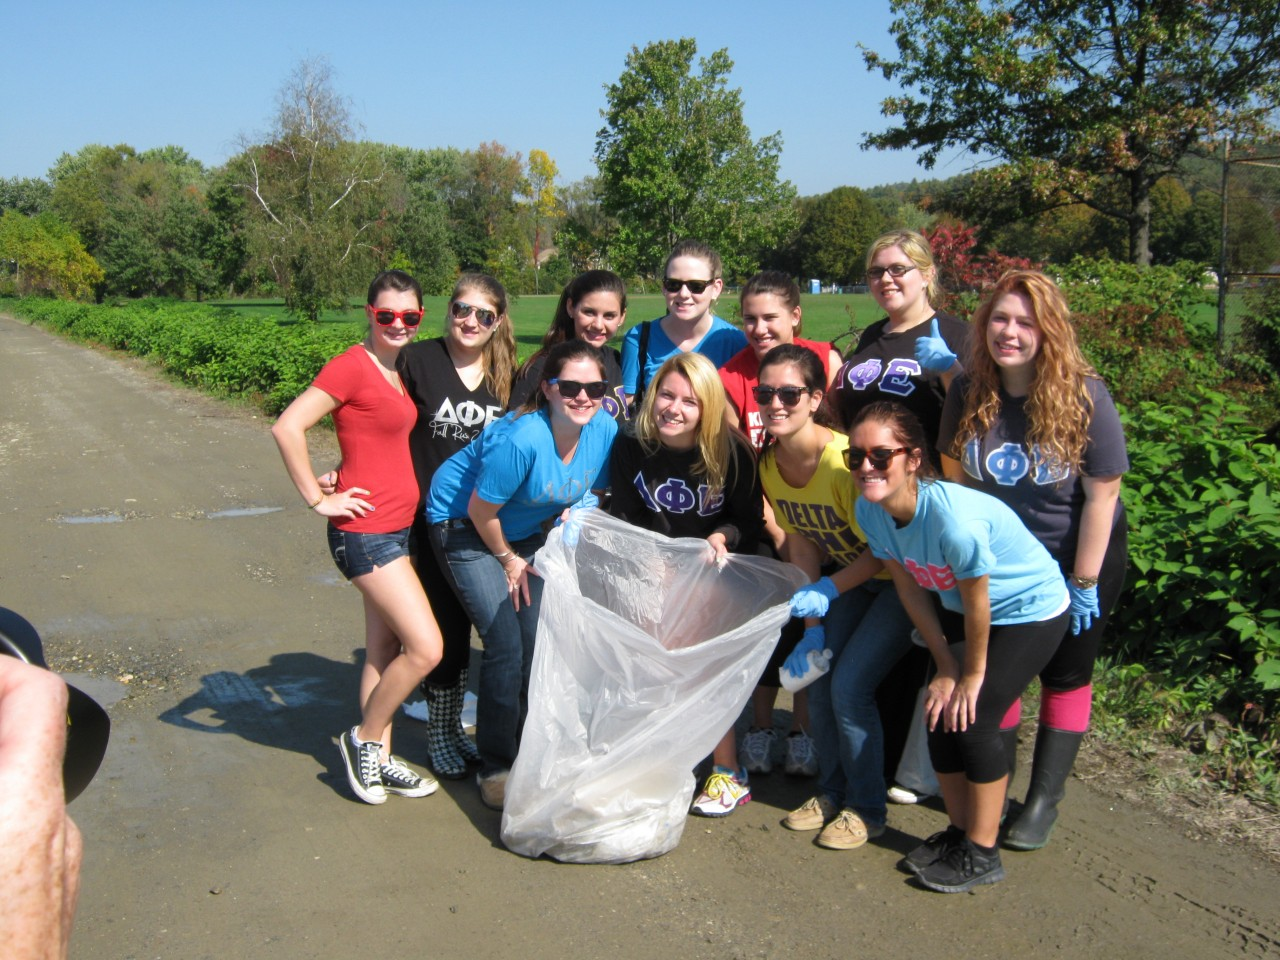 keene state college community service day · keene state college third place eric swope